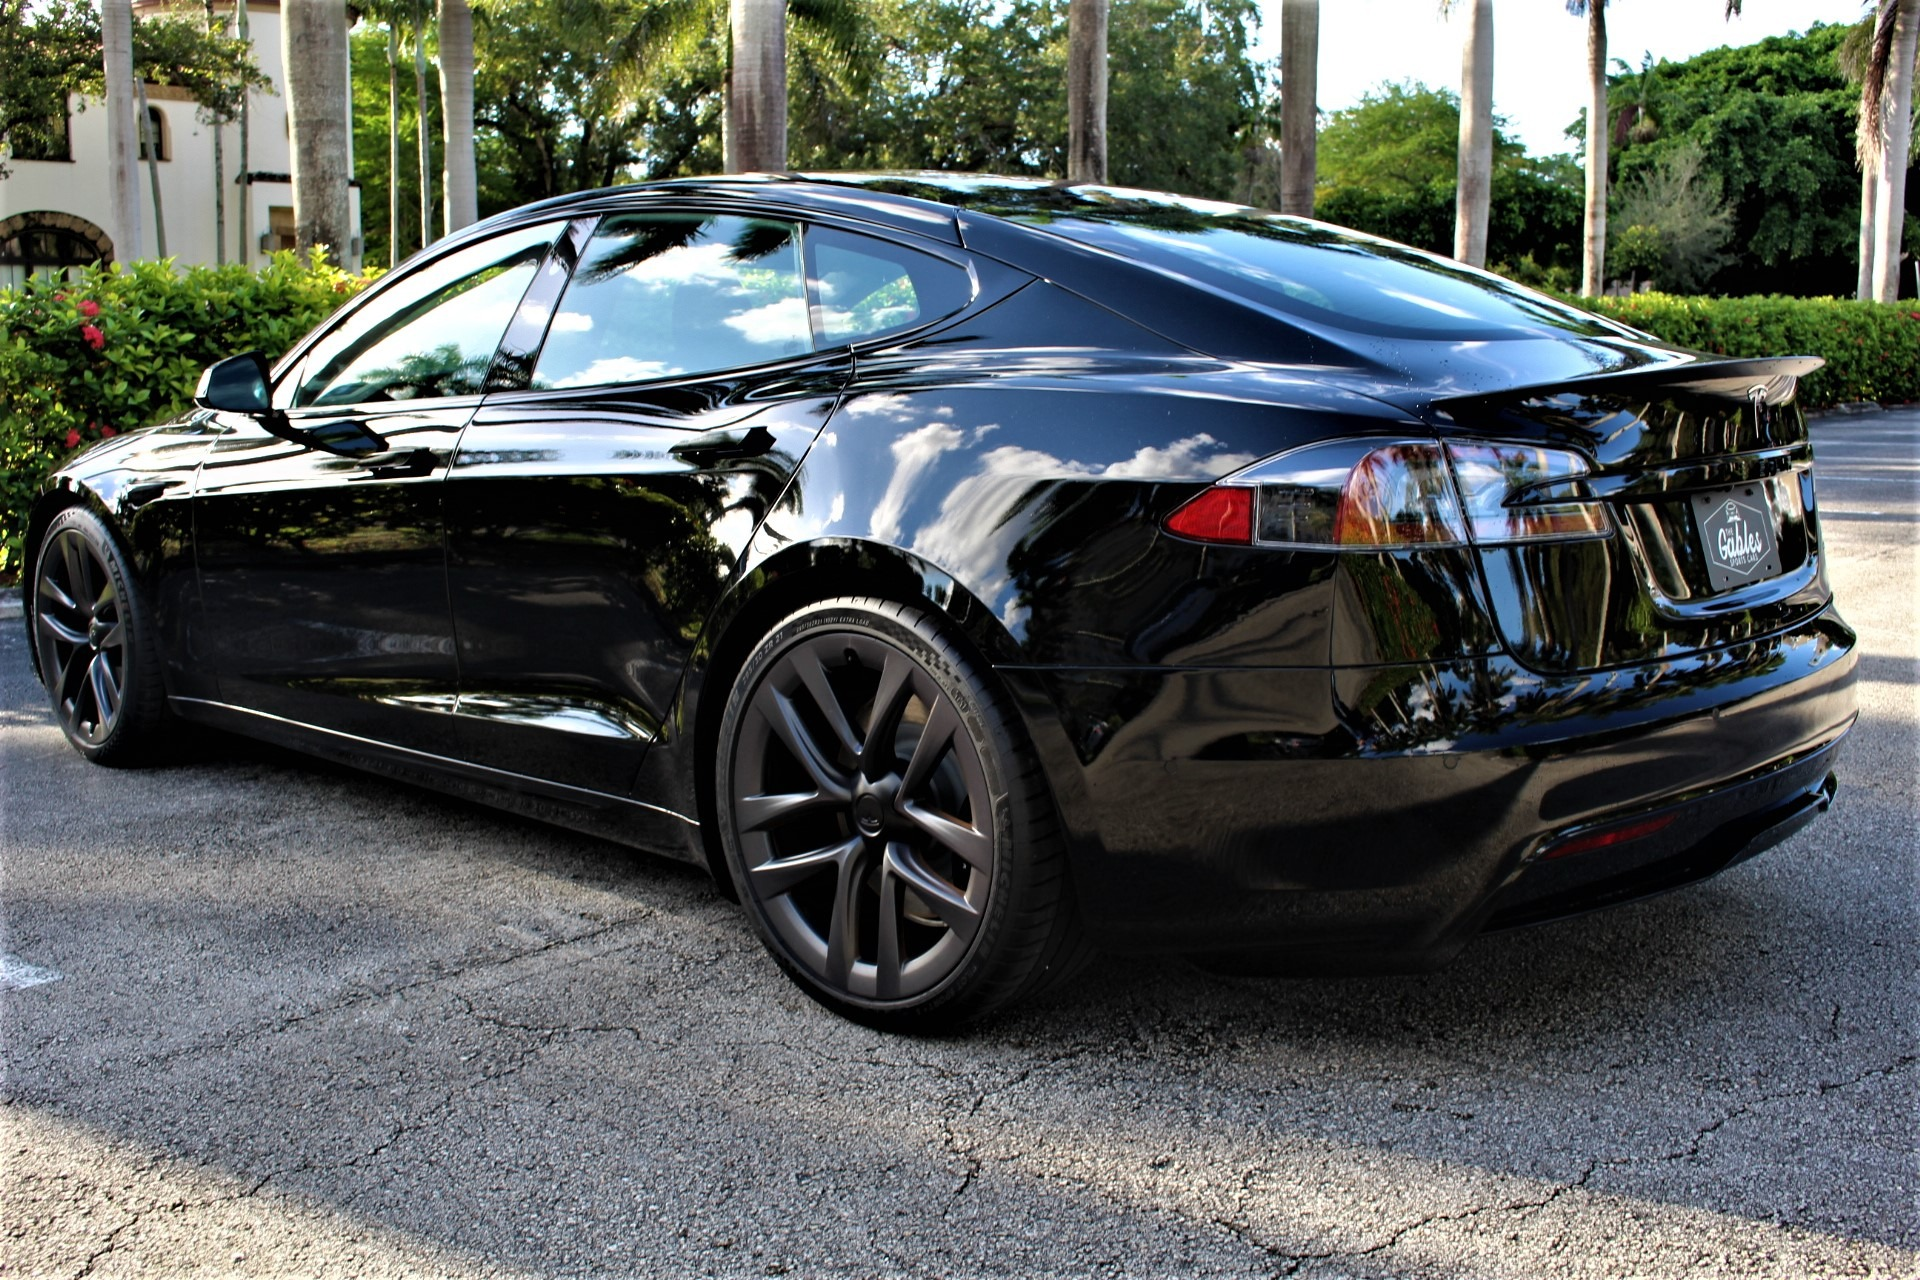 Used 2021 Tesla Model S Plaid for sale $148,850 at The Gables Sports Cars in Miami FL 33146 2